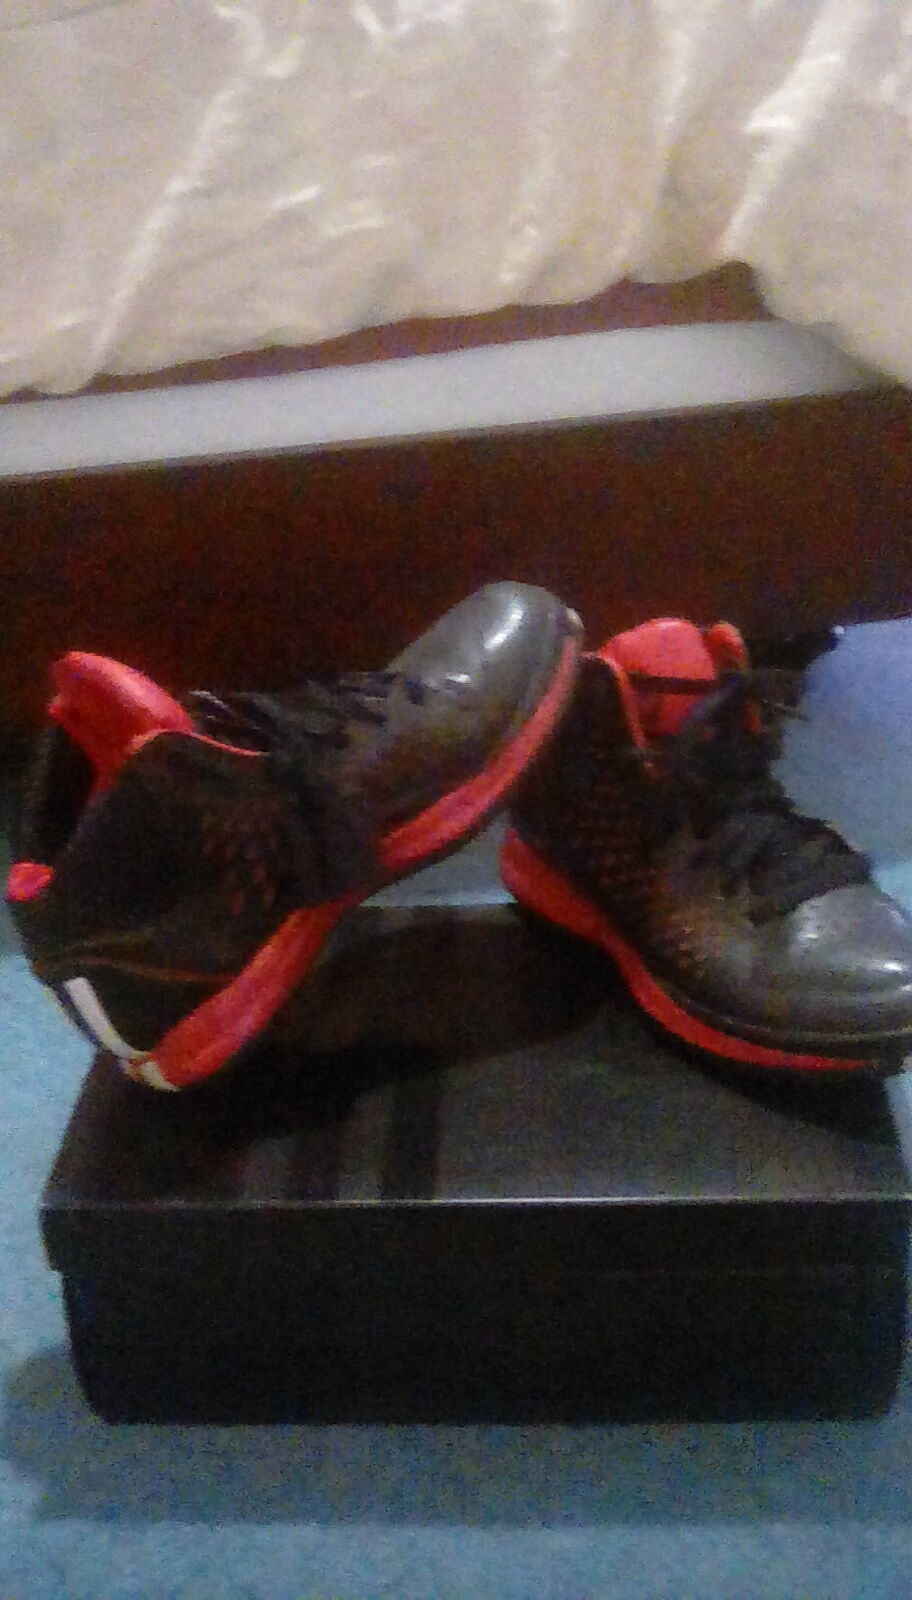 Mens Dpink 3s size 8